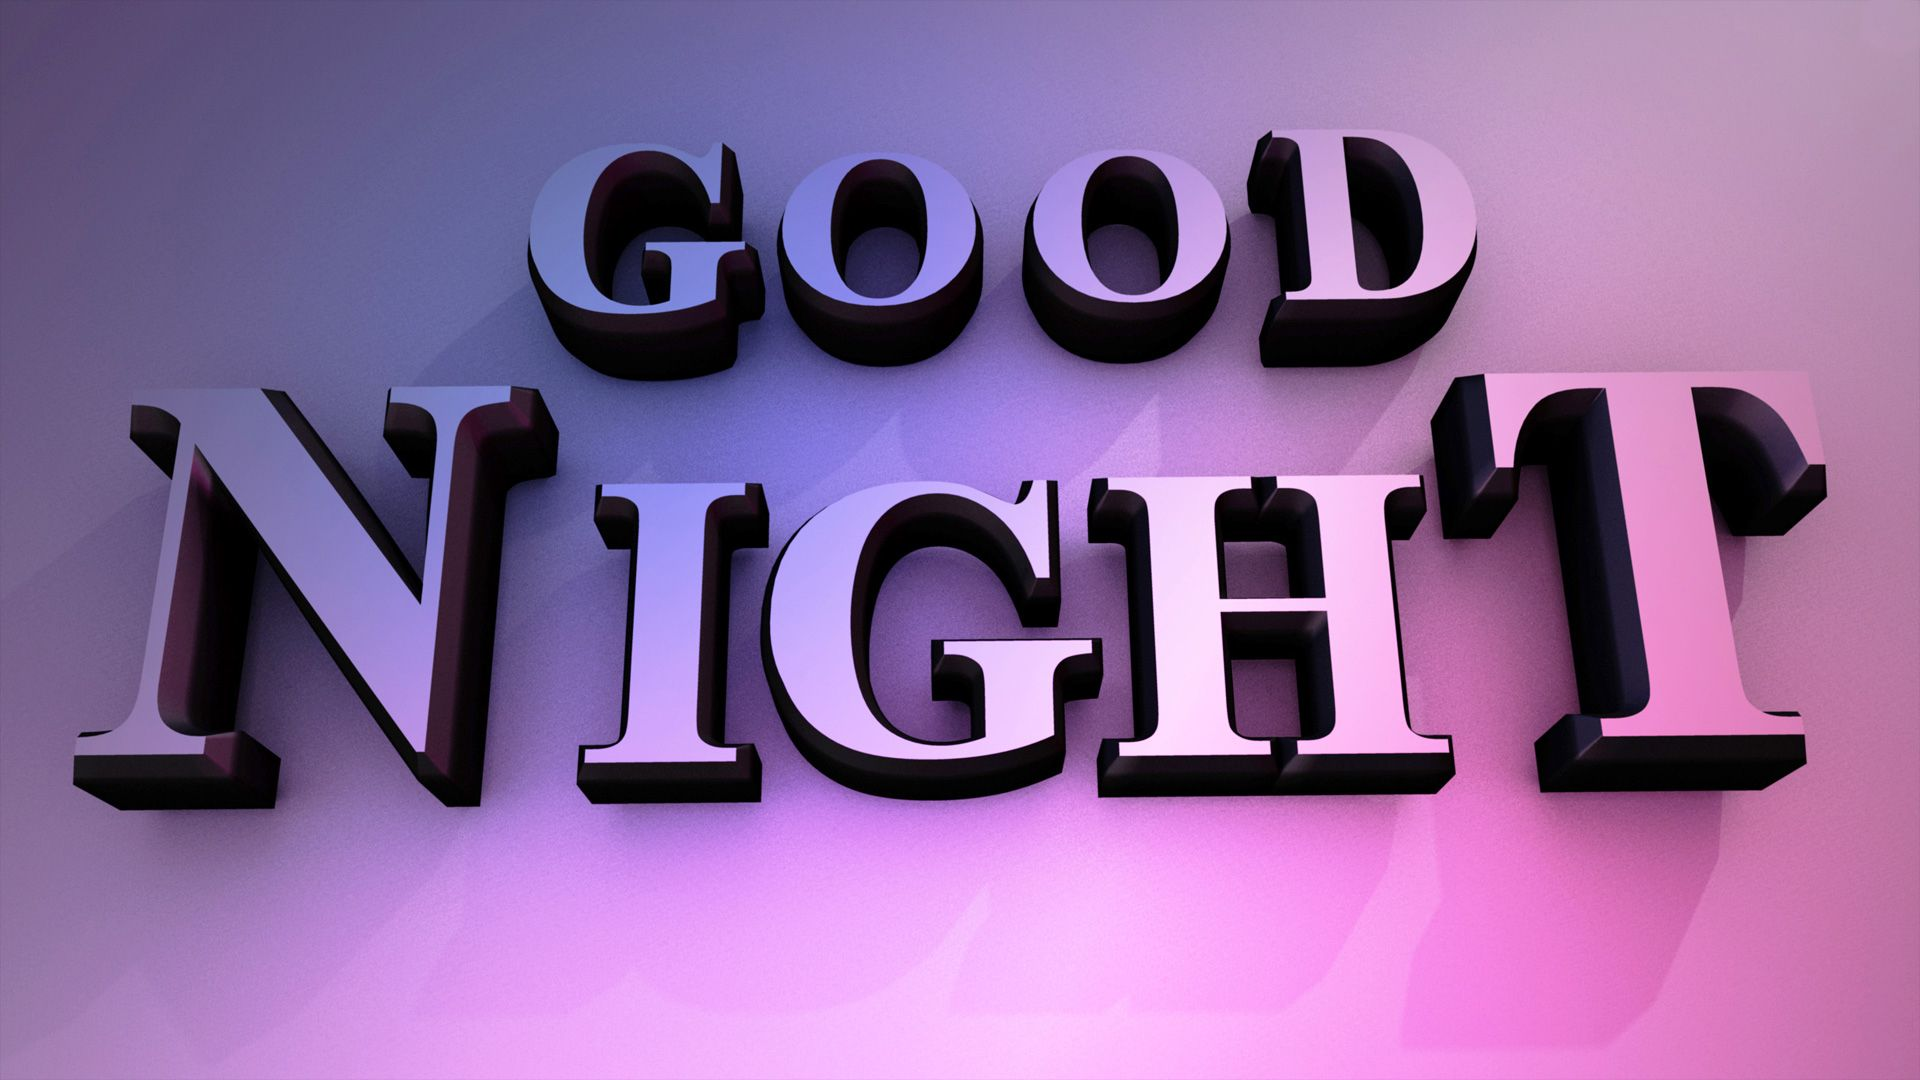 free good night wallpaper download, pictures, images, scraps, funny